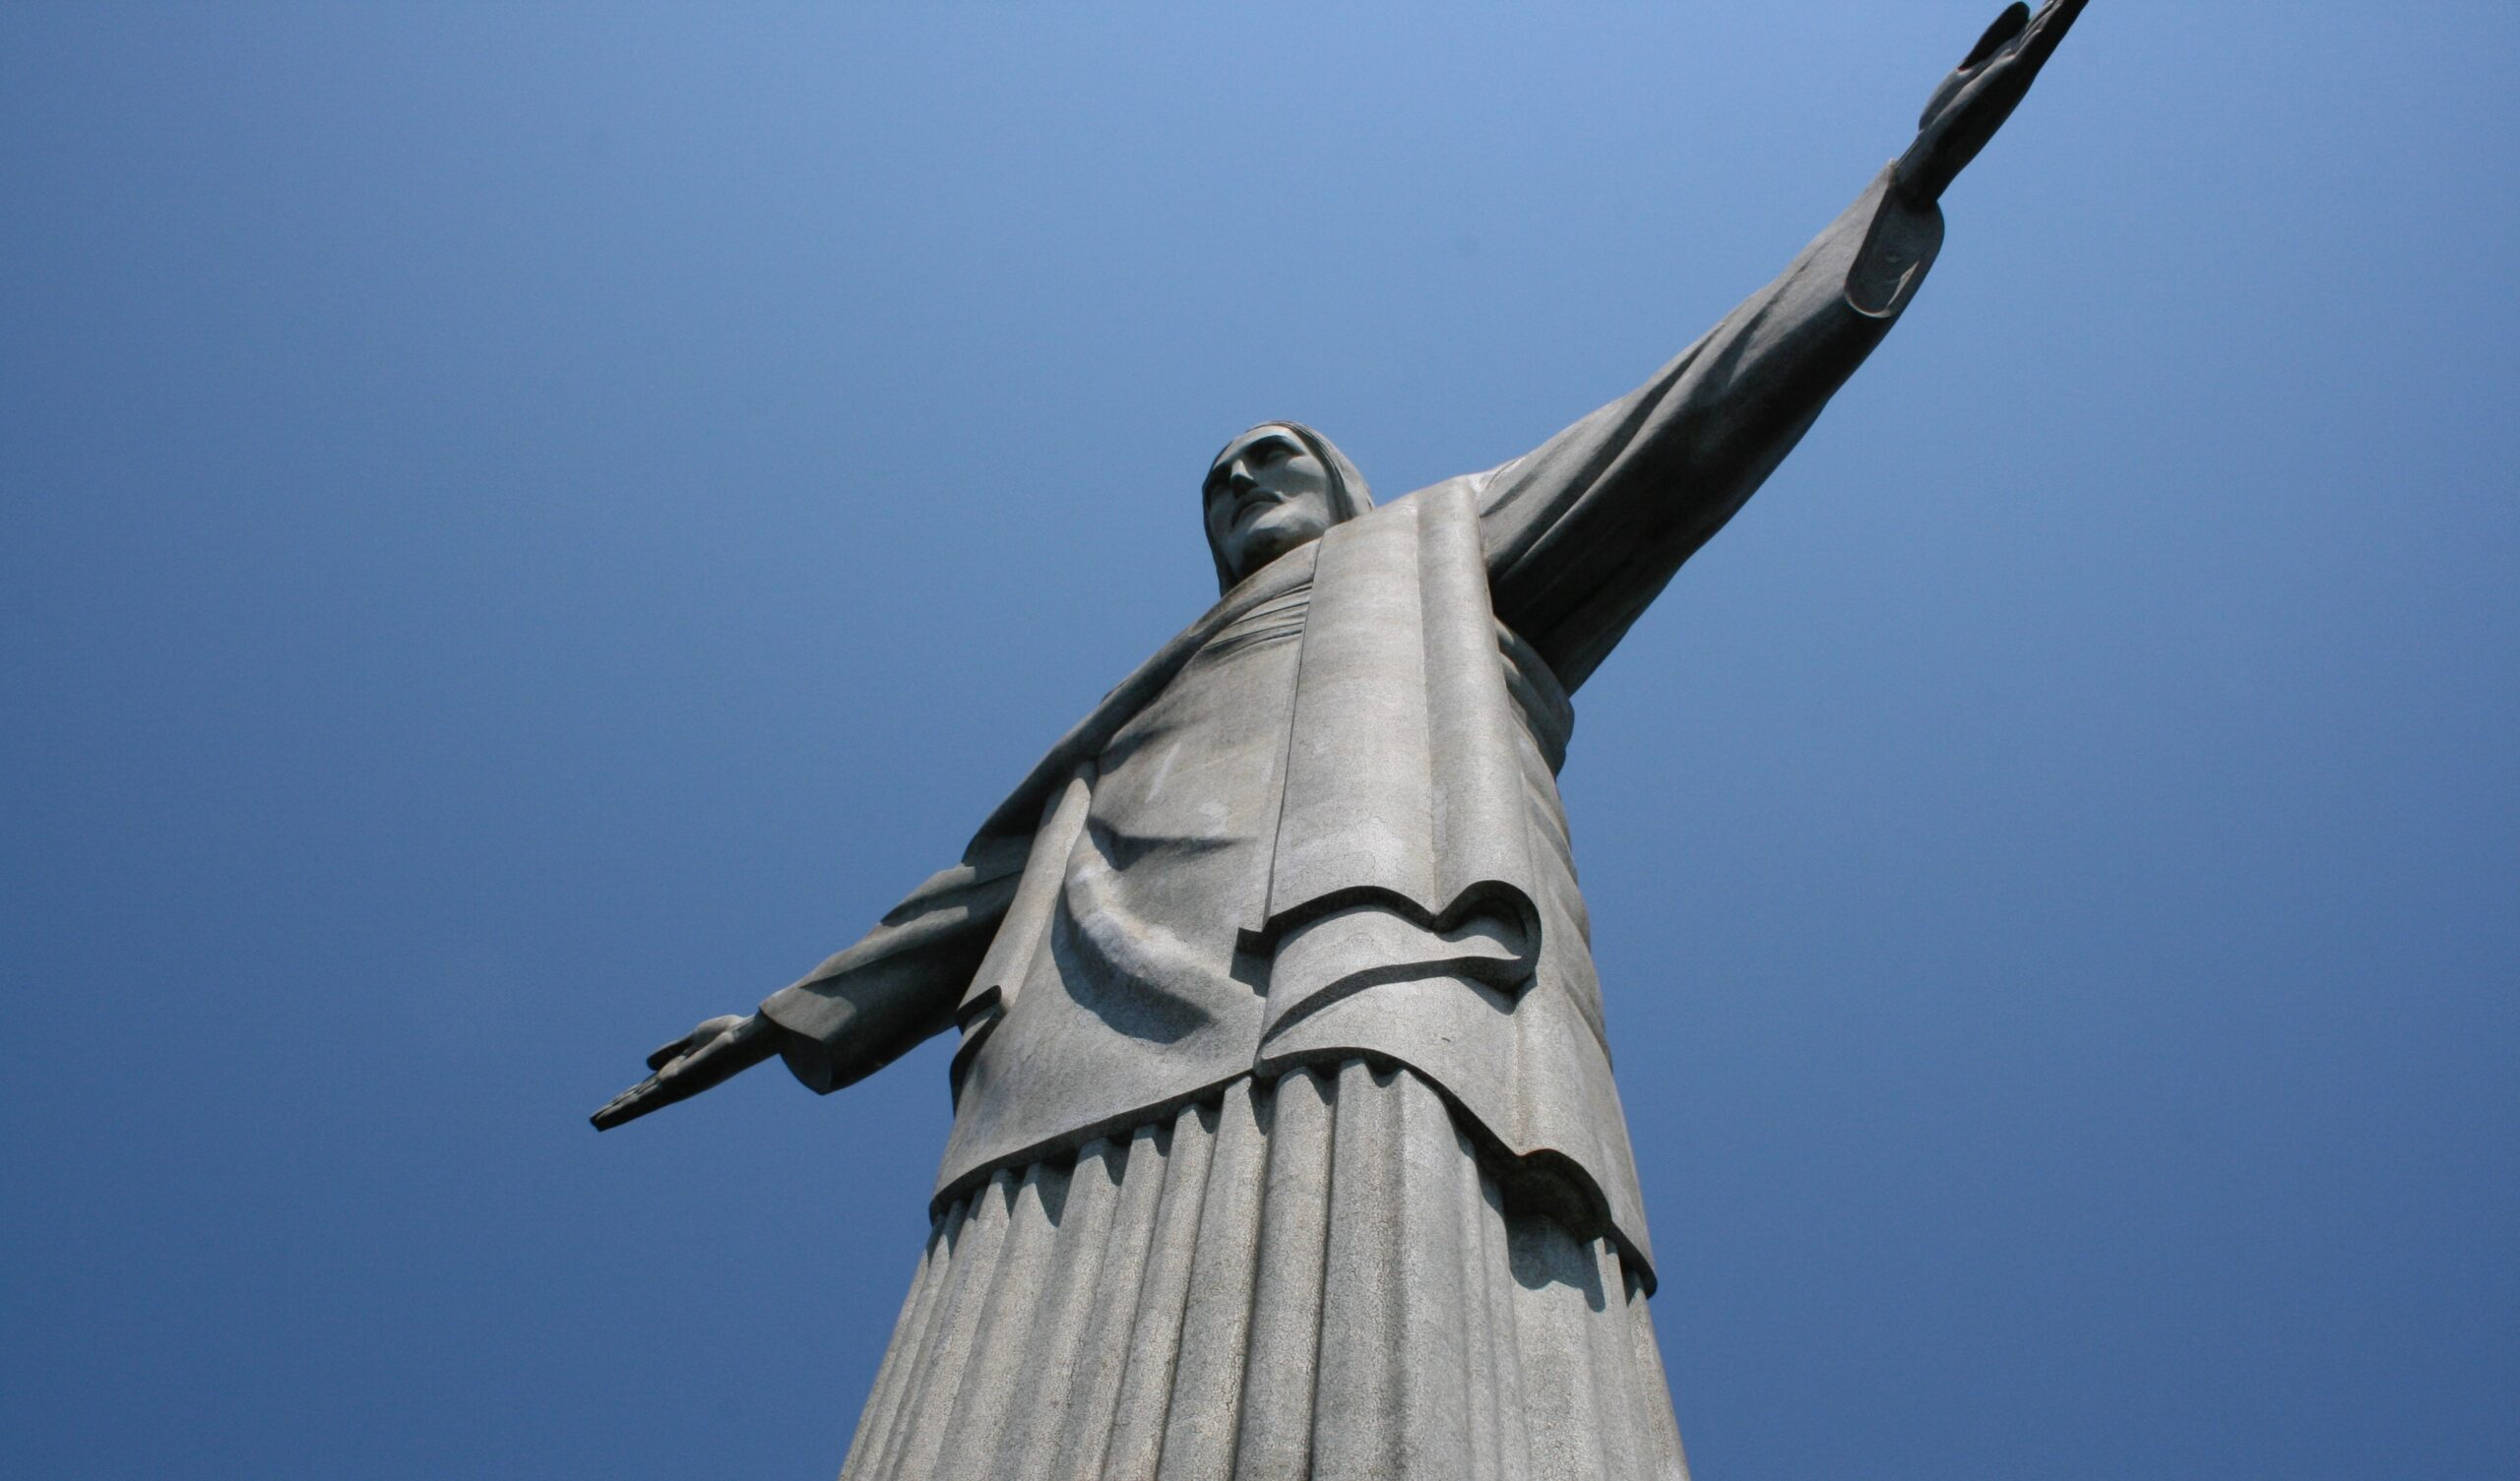 low angle photography of angel statue under blue sky during daytime